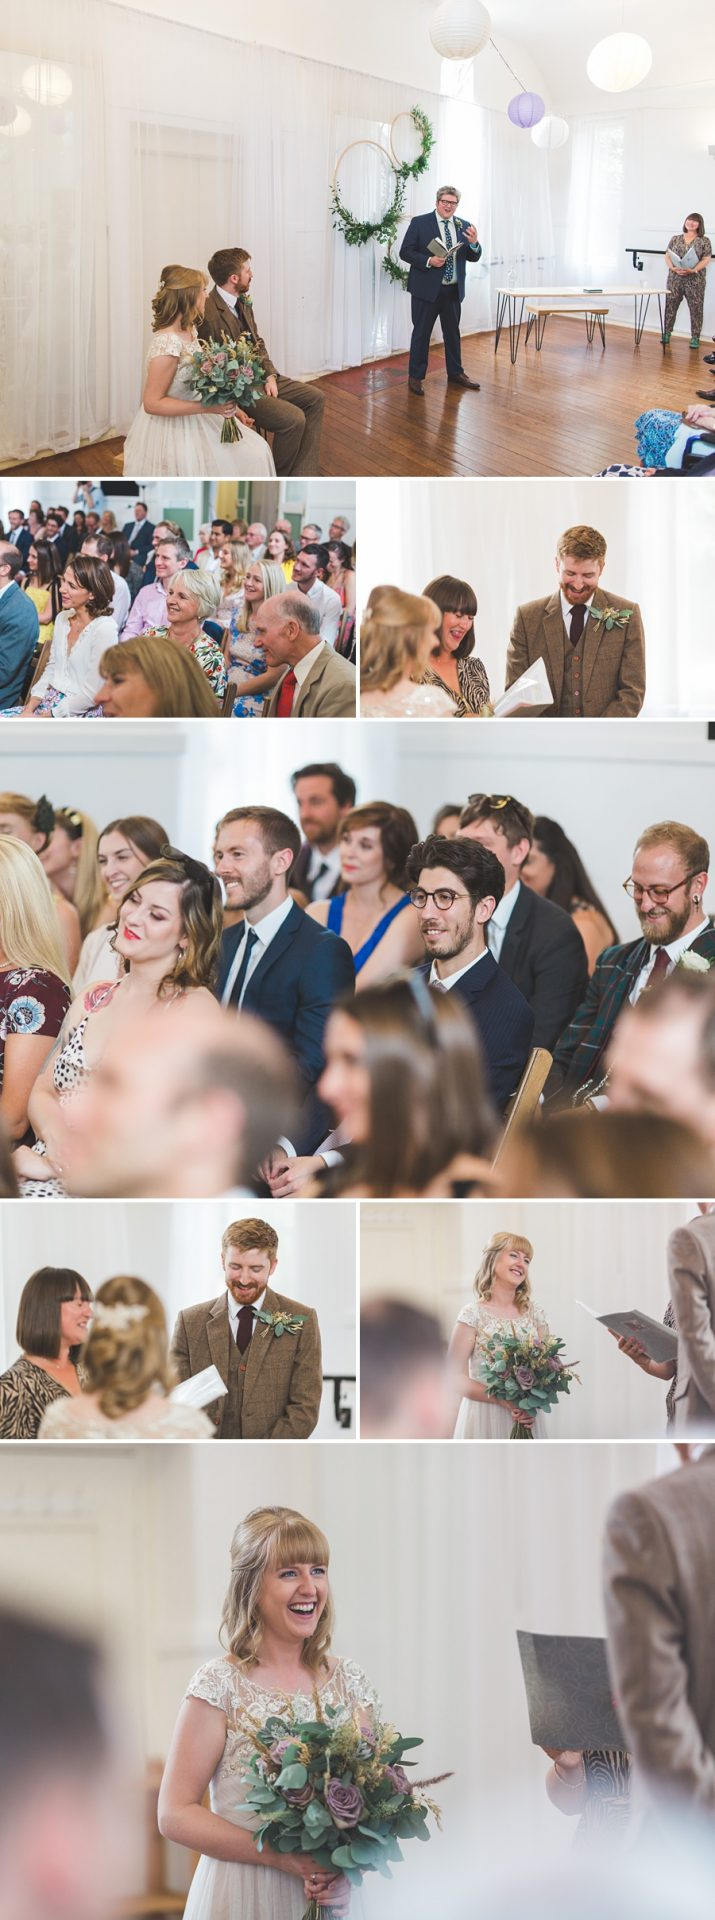 wedding photography at the letchworth centre for healthy living for Steffi and Rob